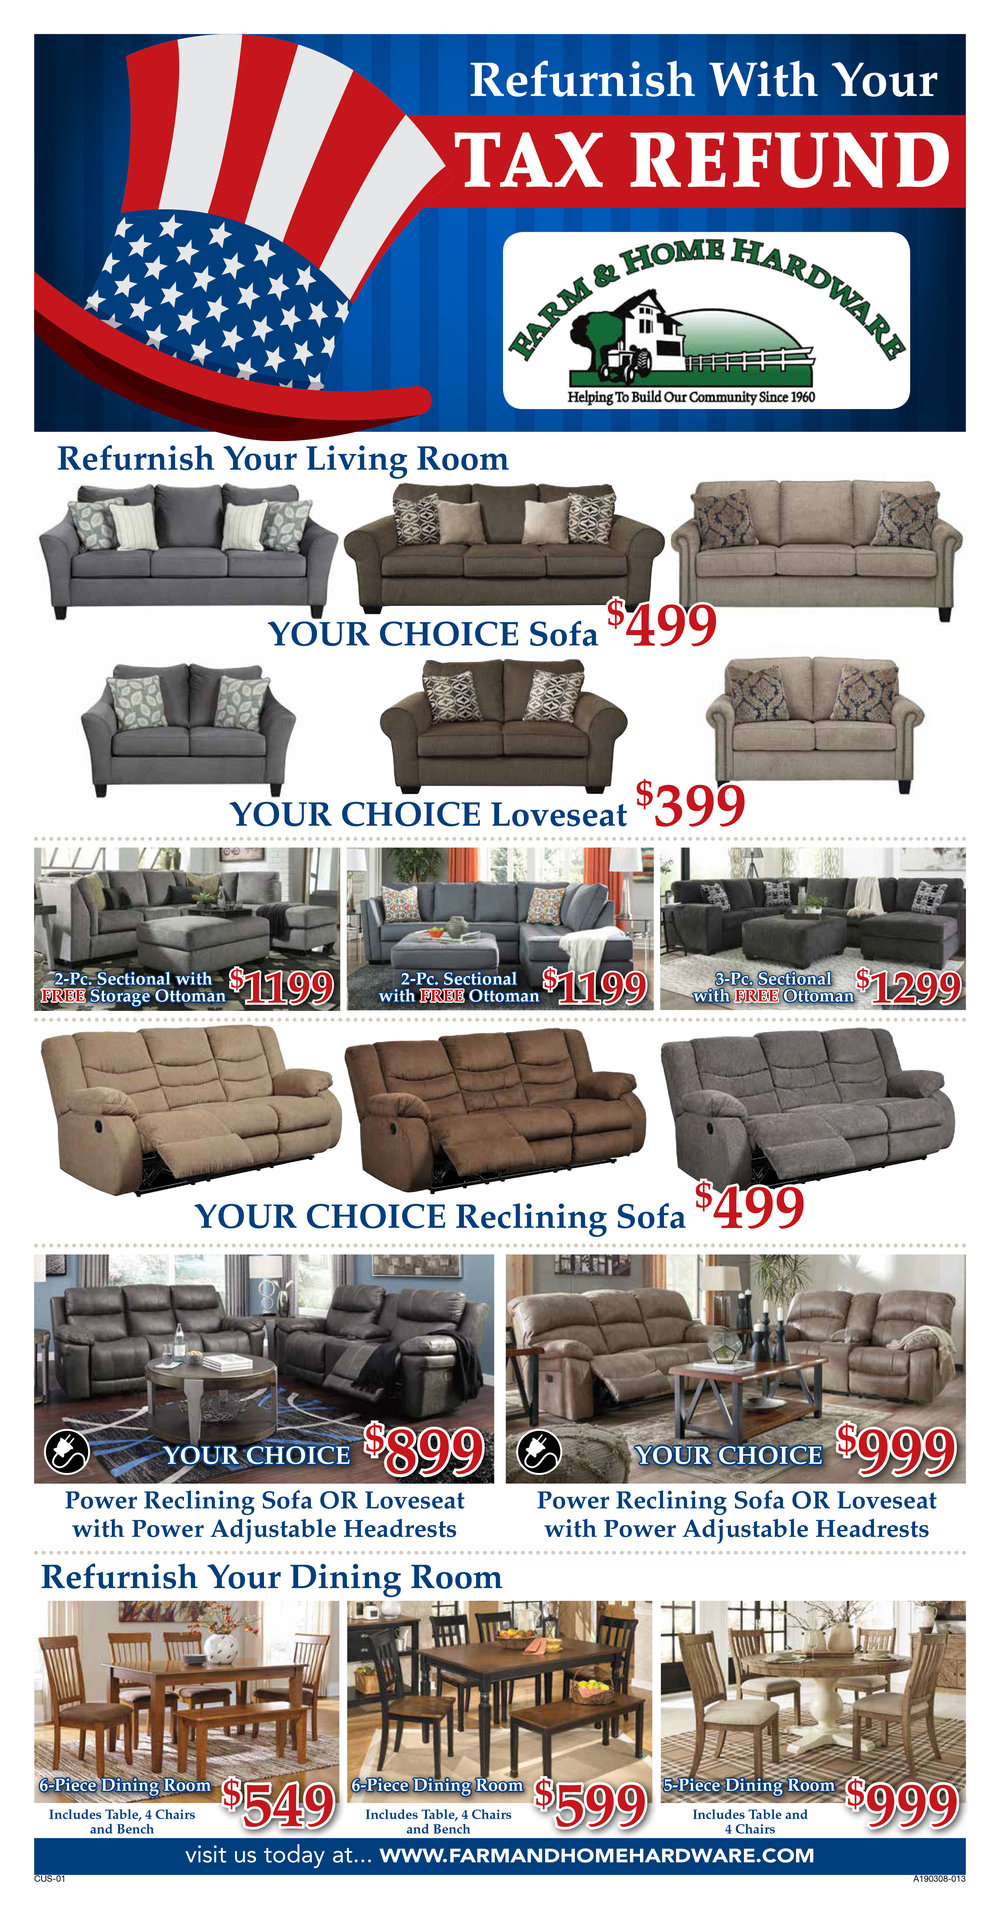 Ashley Furniture Tax Refund Sales Event Page 1